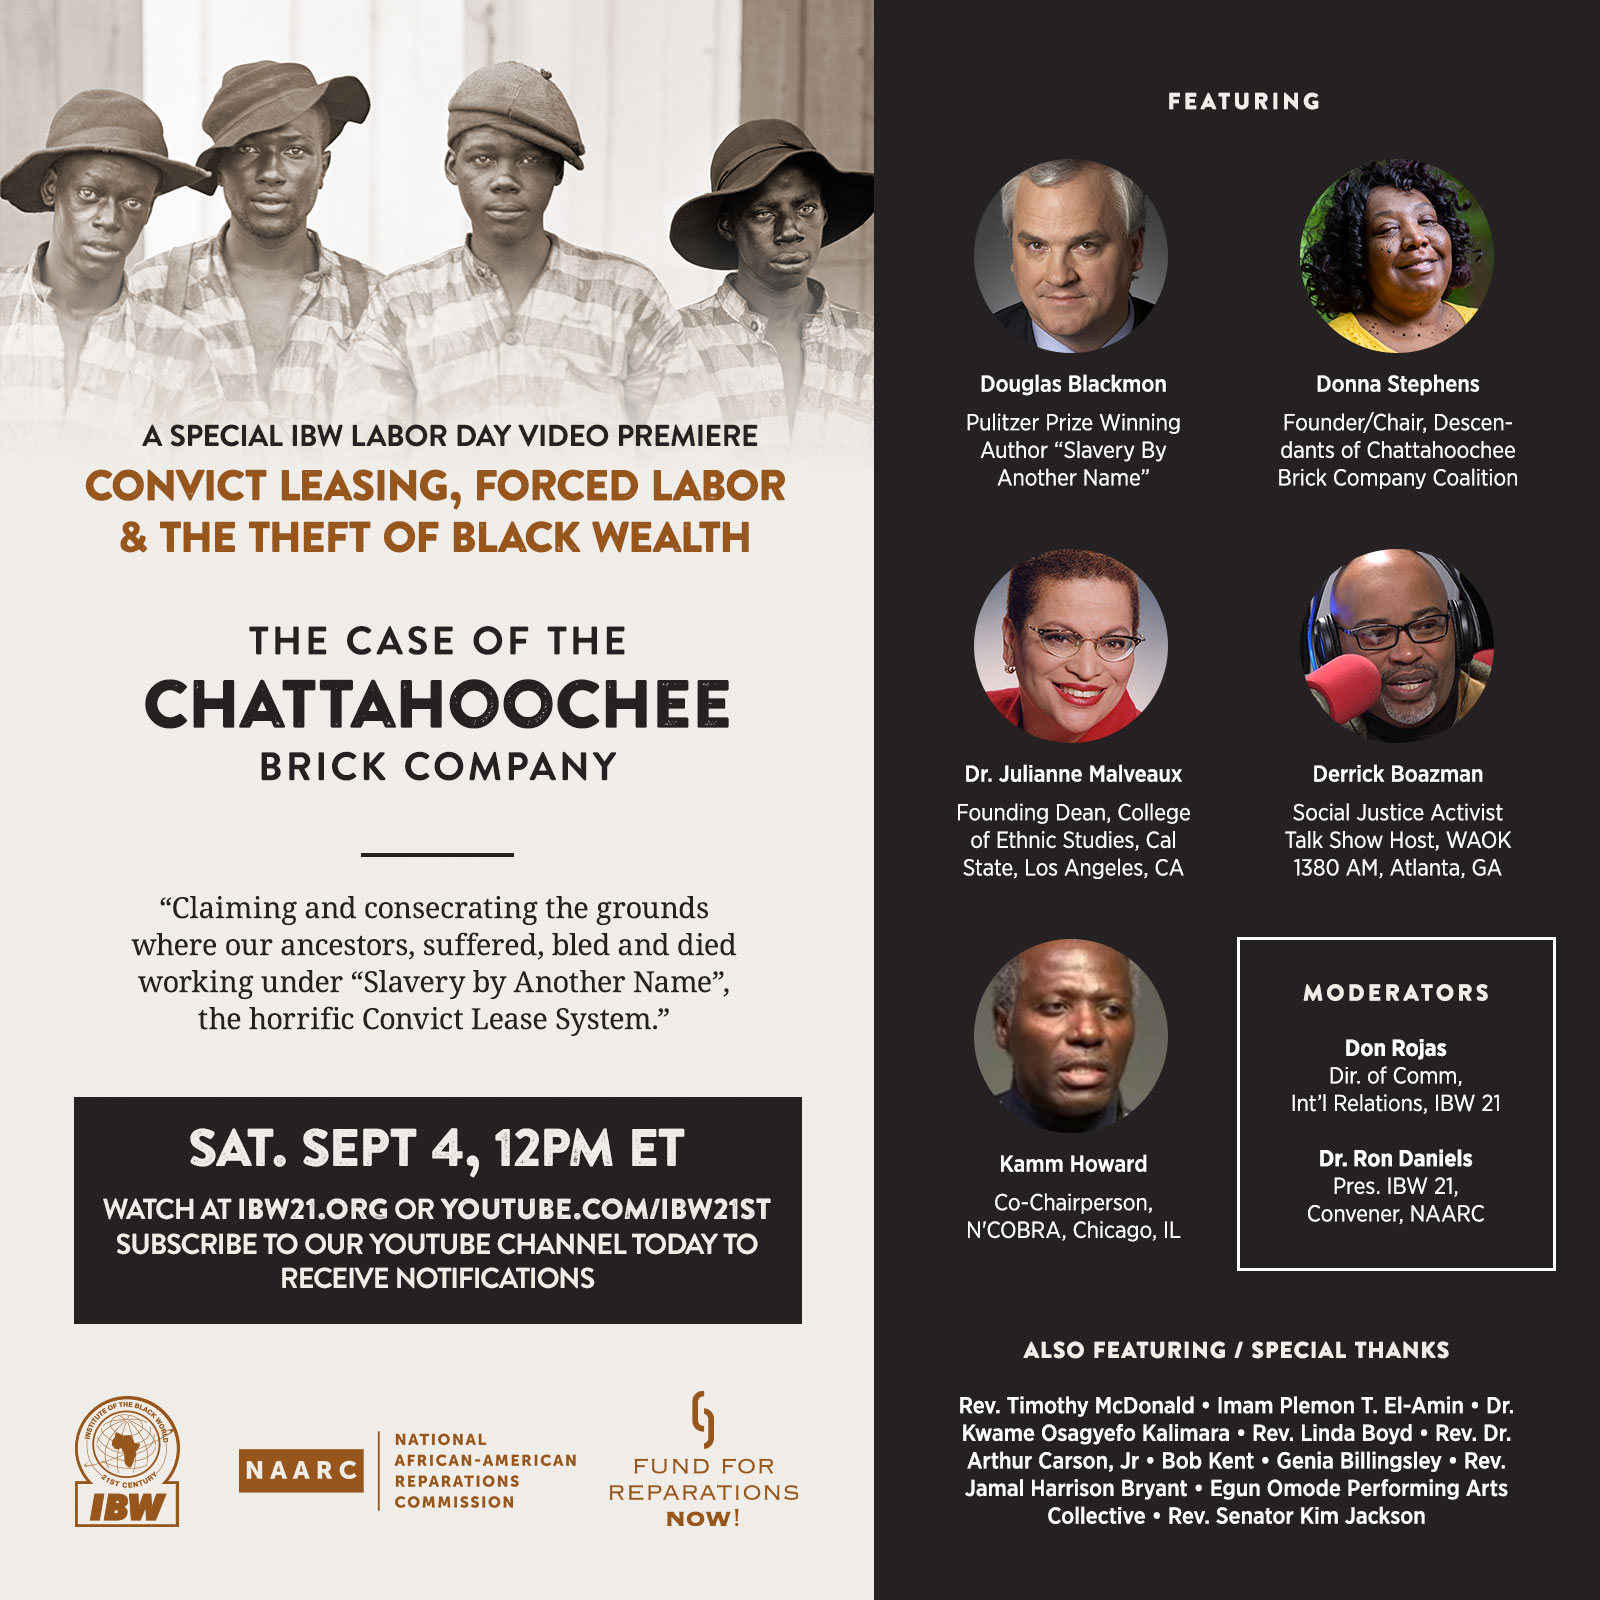 A Special IBW Labor Day video premiere: Convict Leasing, Forced Labor, Theft of Black Wealth: The Case of the Chattahoochee Brick Company